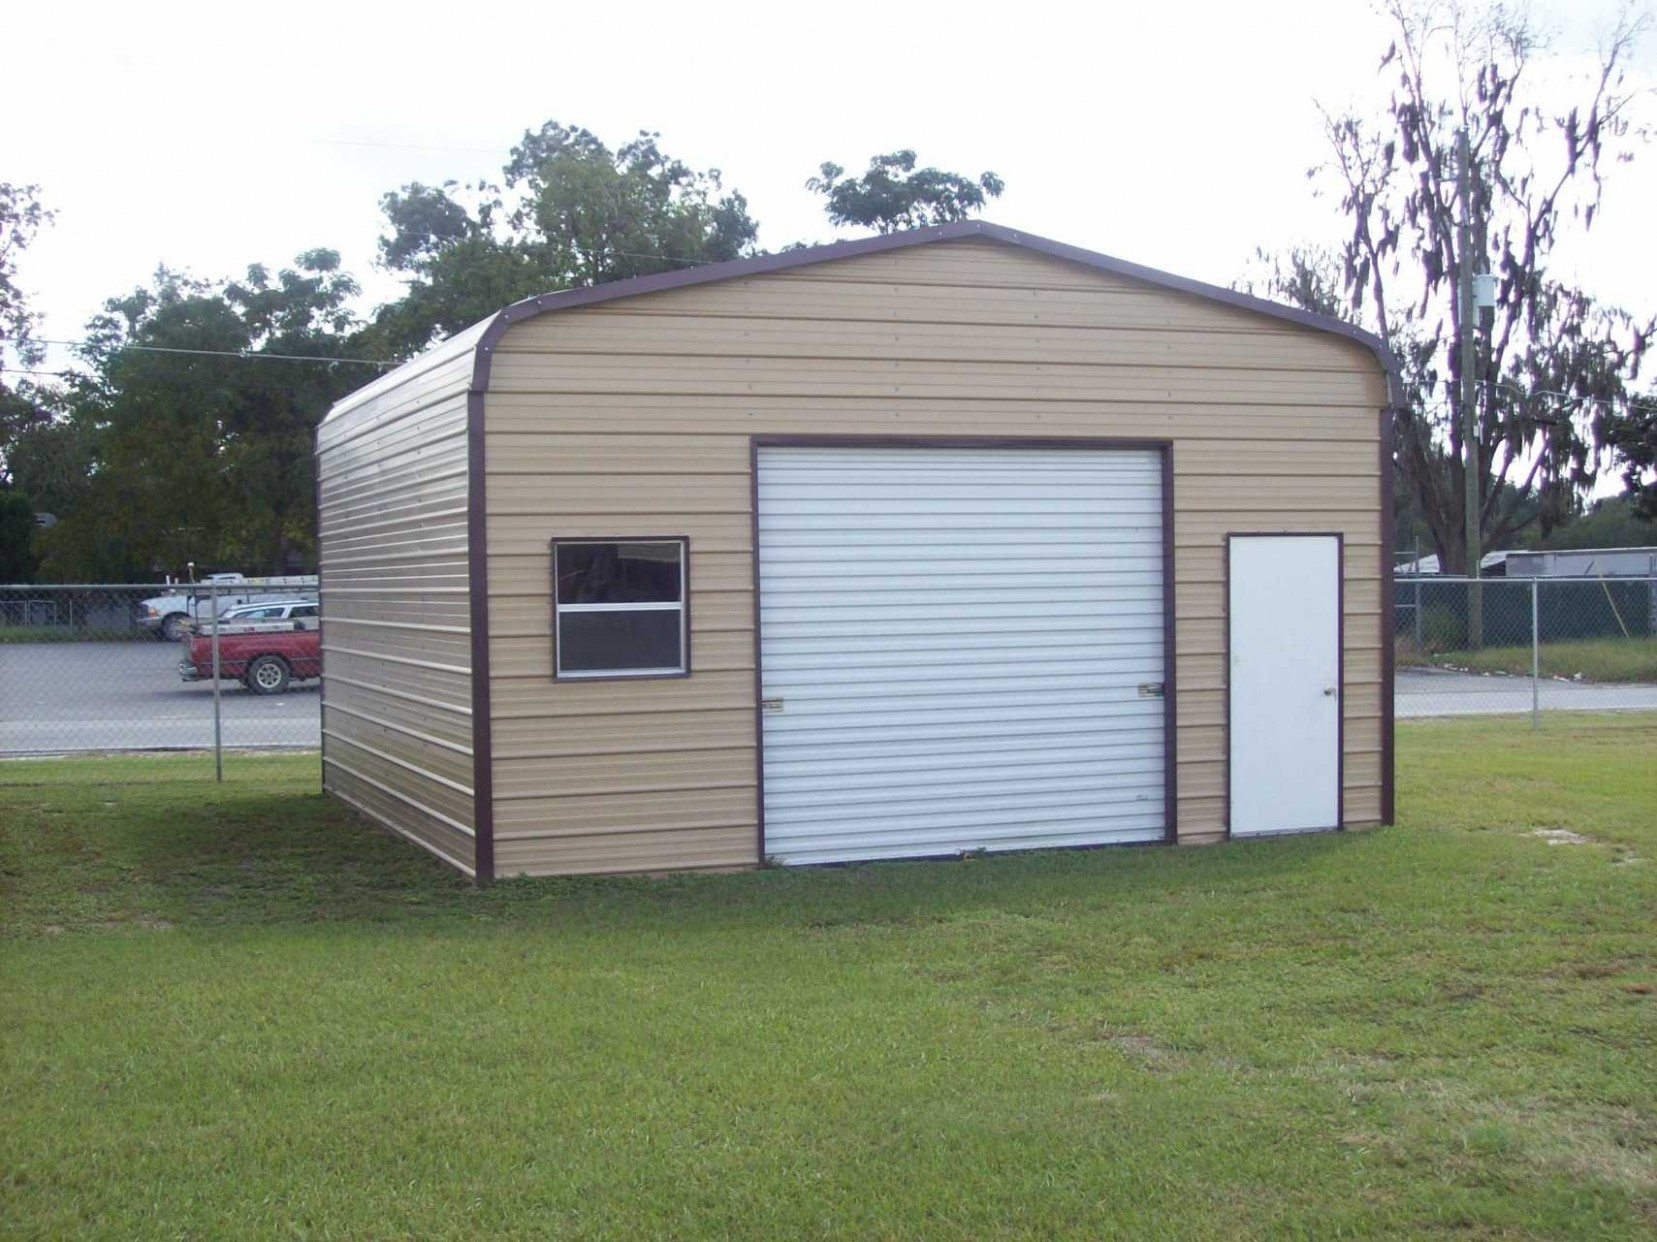 1517707912-garage-kits-carports-building-a-carport-metal-garage-buildings-metal-garage-kits.jpg